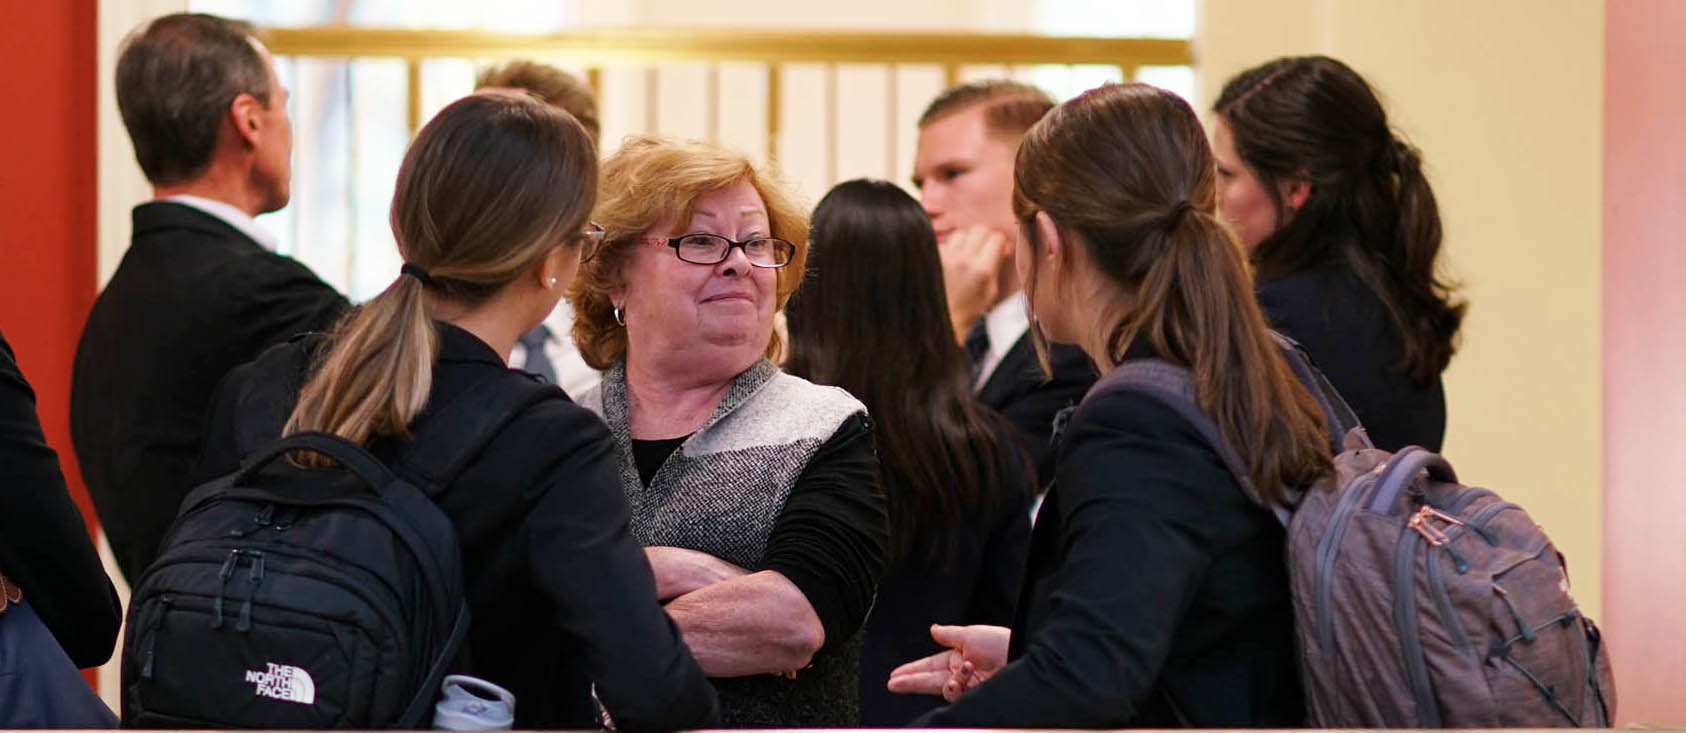 Students surround Jan Taylor after their first round in the West Monroe Partners case competition